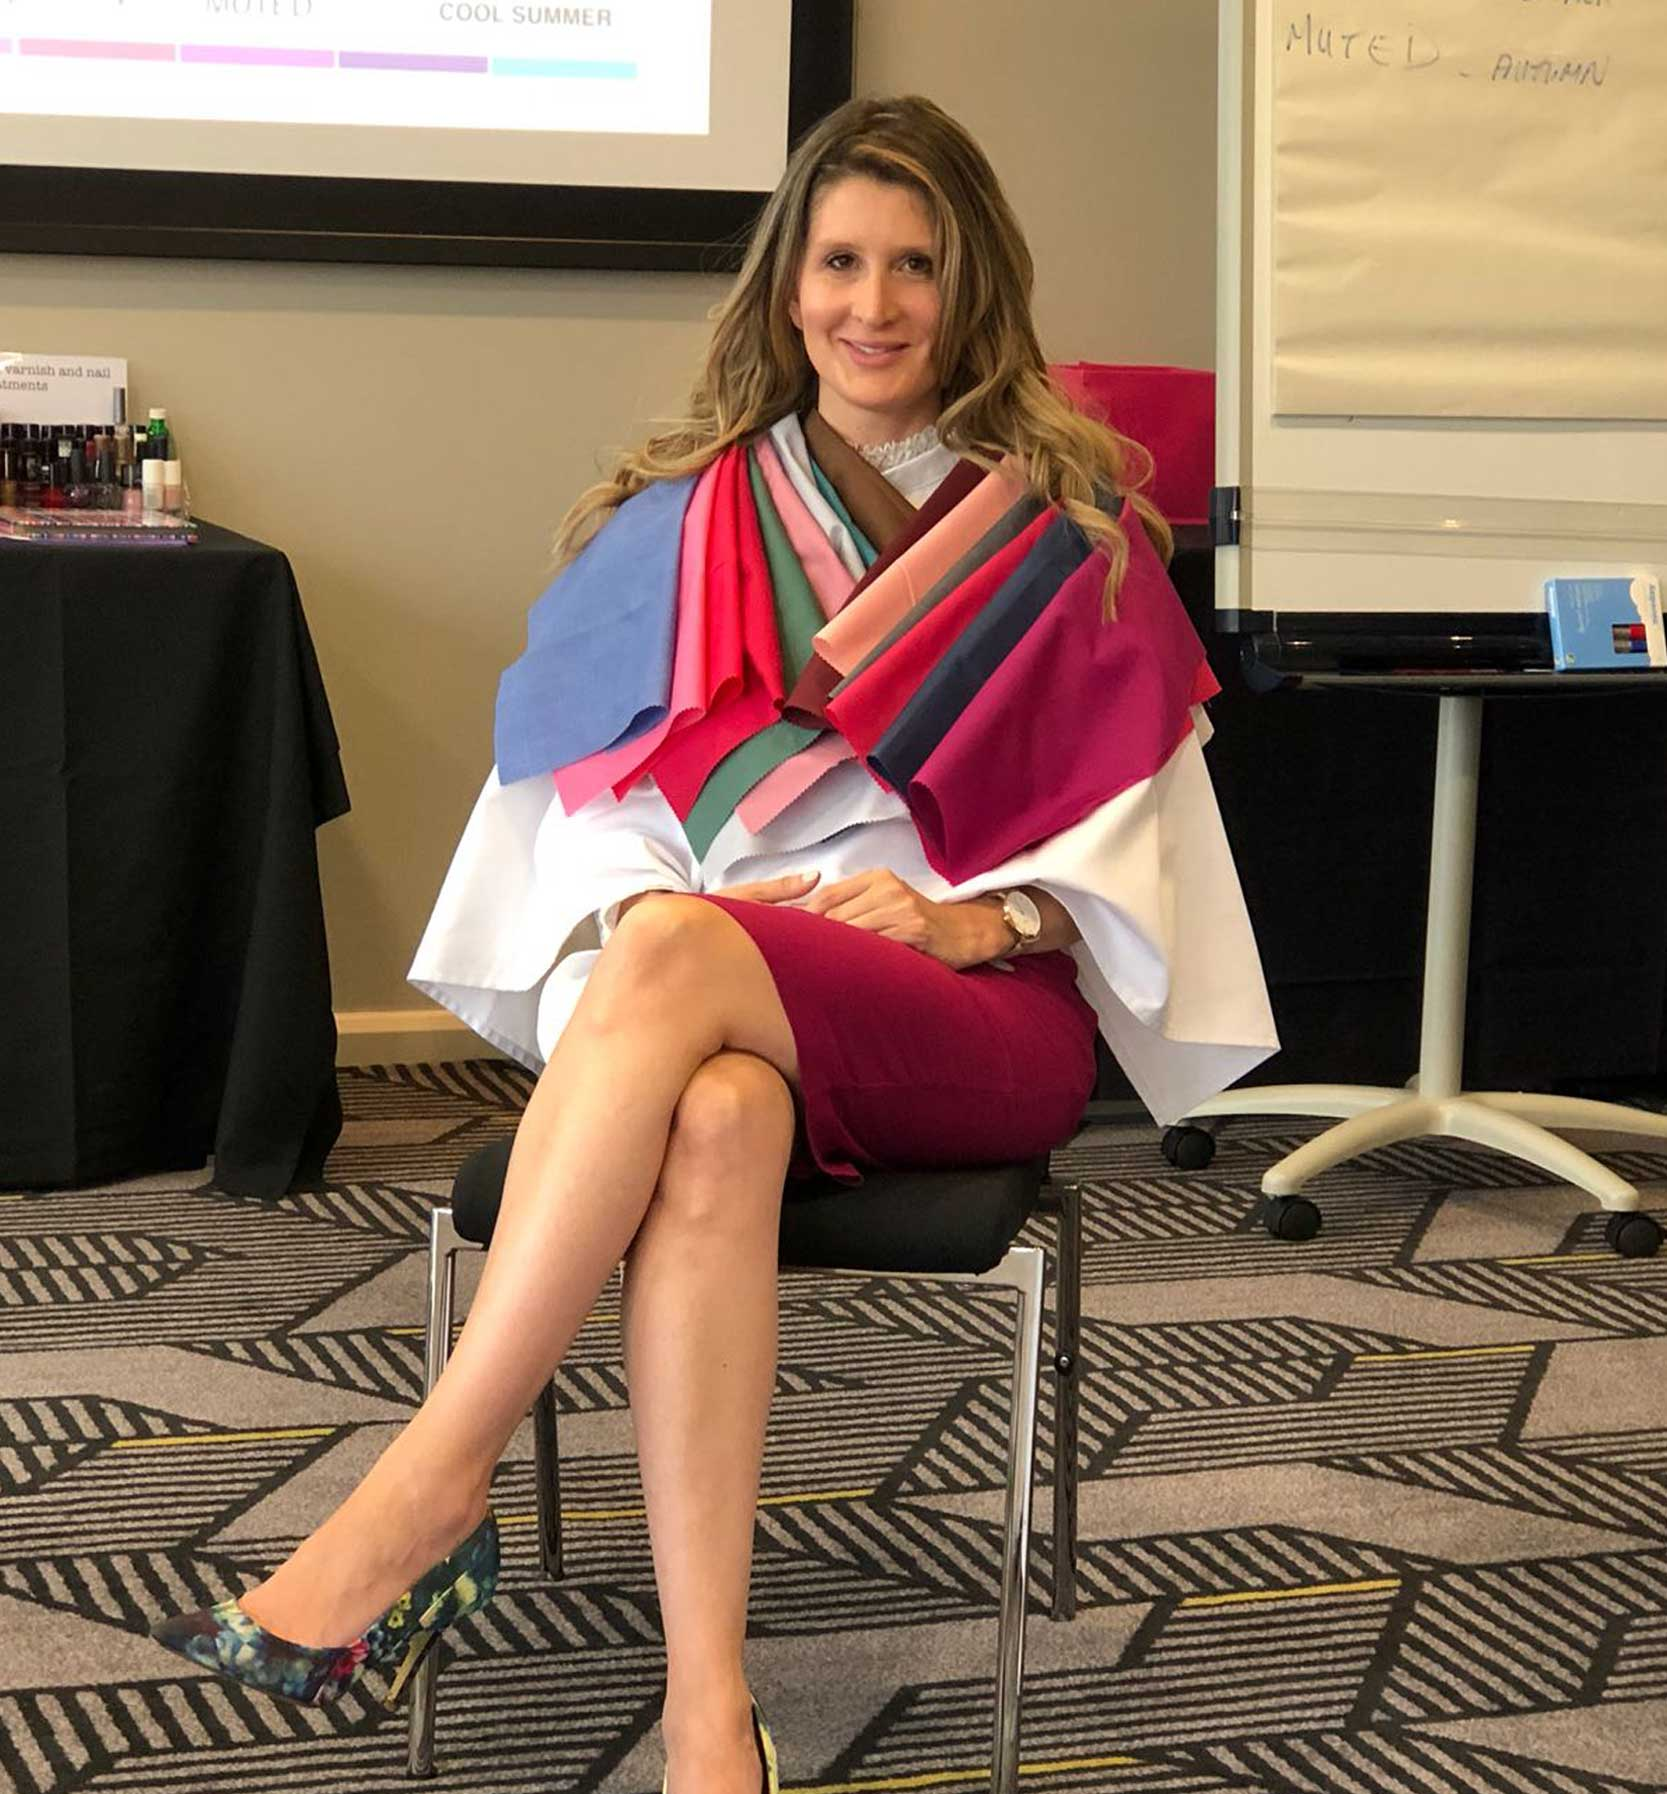 Photo of Monica Fuentes Style Coaching - sitting dow with cloths swatches on her shoulders